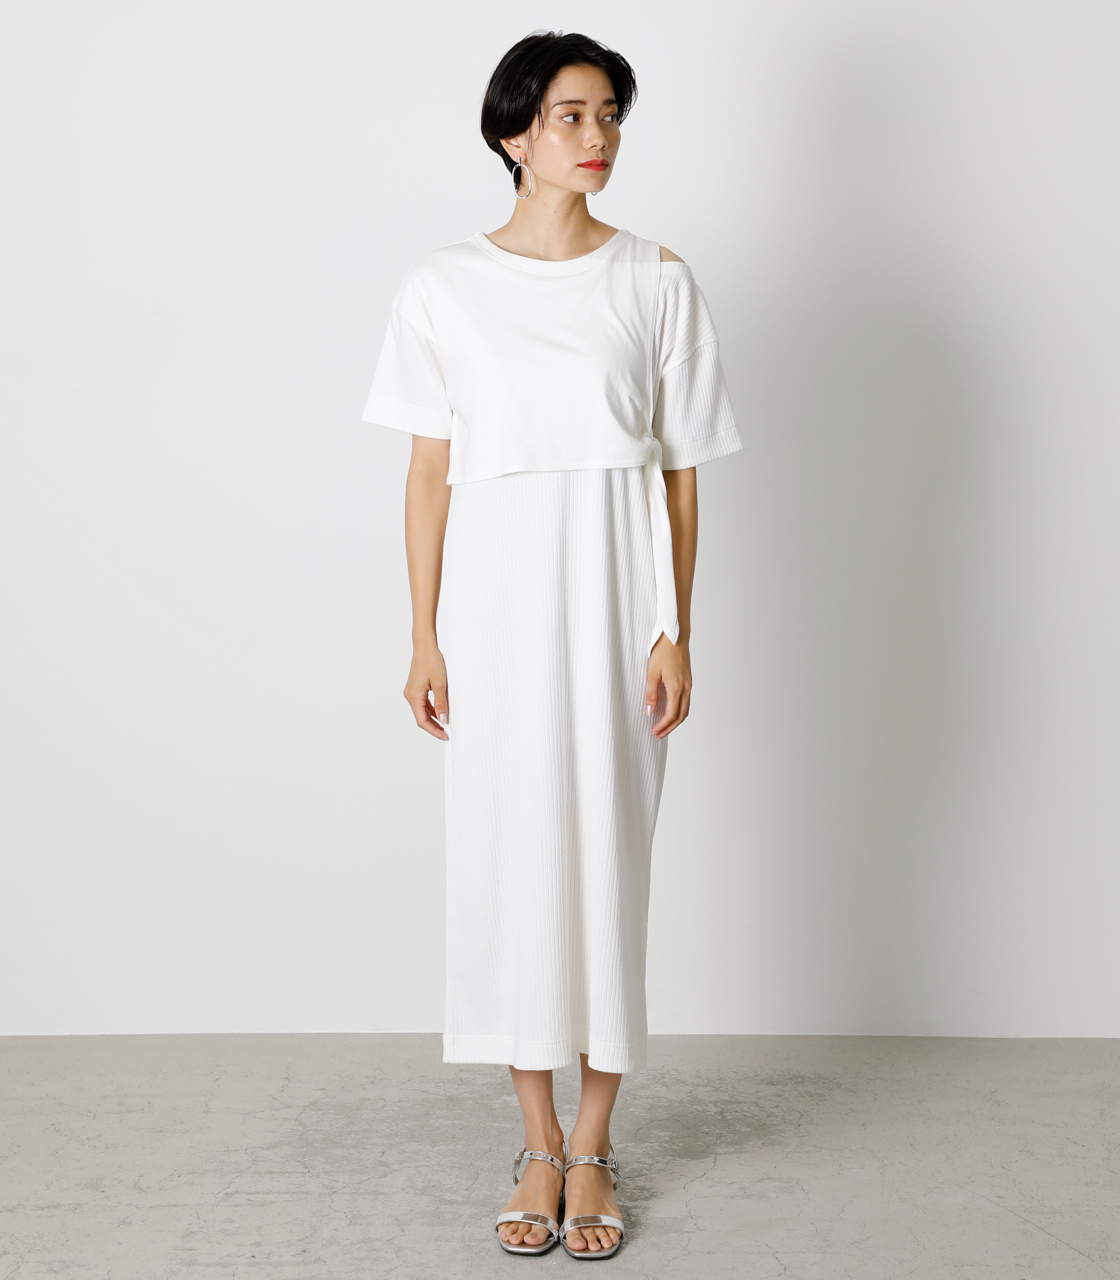 FRONT LINK ONEPIECE/フロントリンクワンピース 詳細画像 O/WHT 4